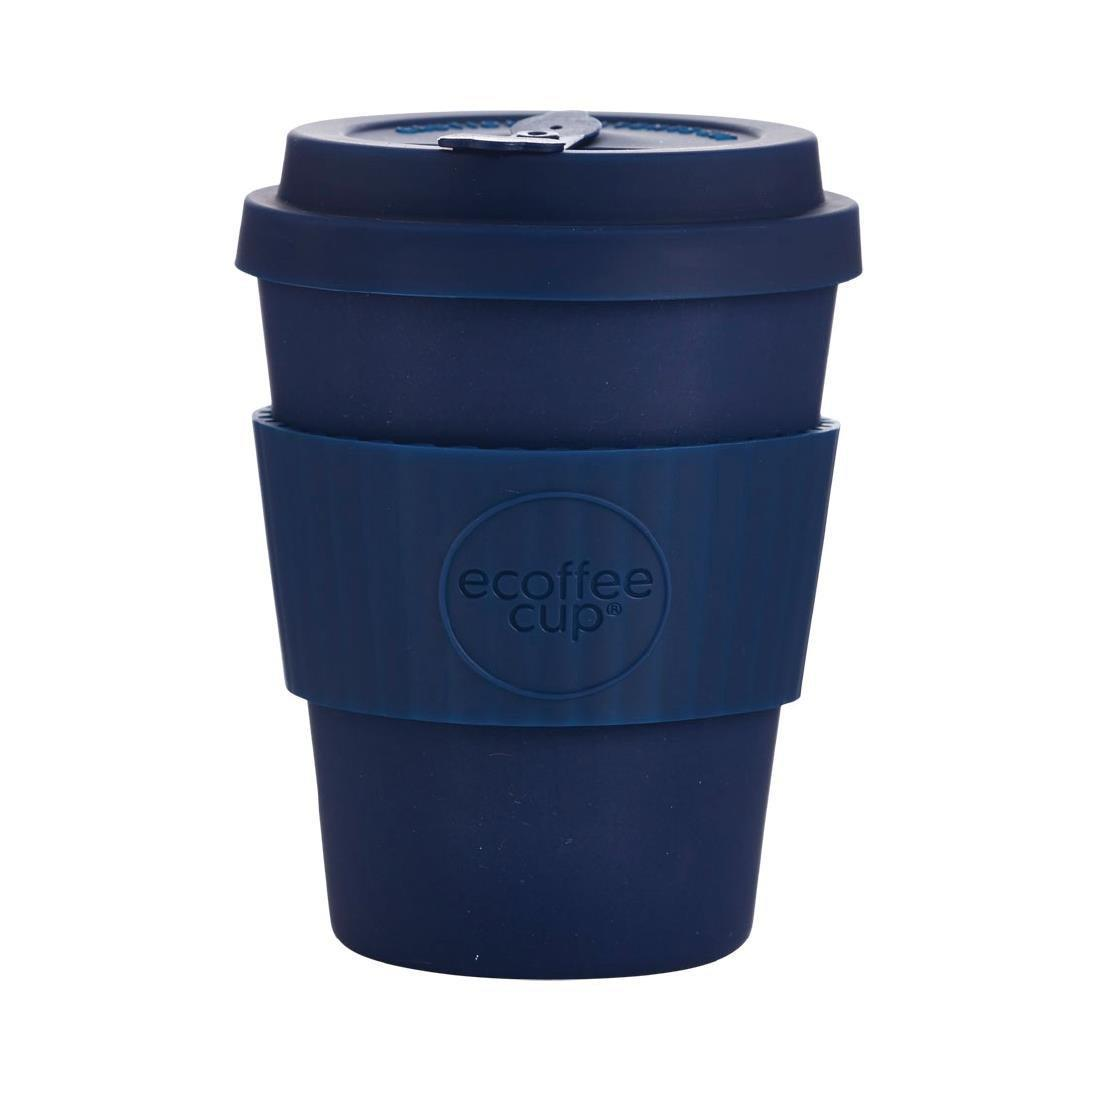 Ecoffee Cup Bamboo Reusable Coffee Cup Dark Energy Navy 12oz - Each - DY491